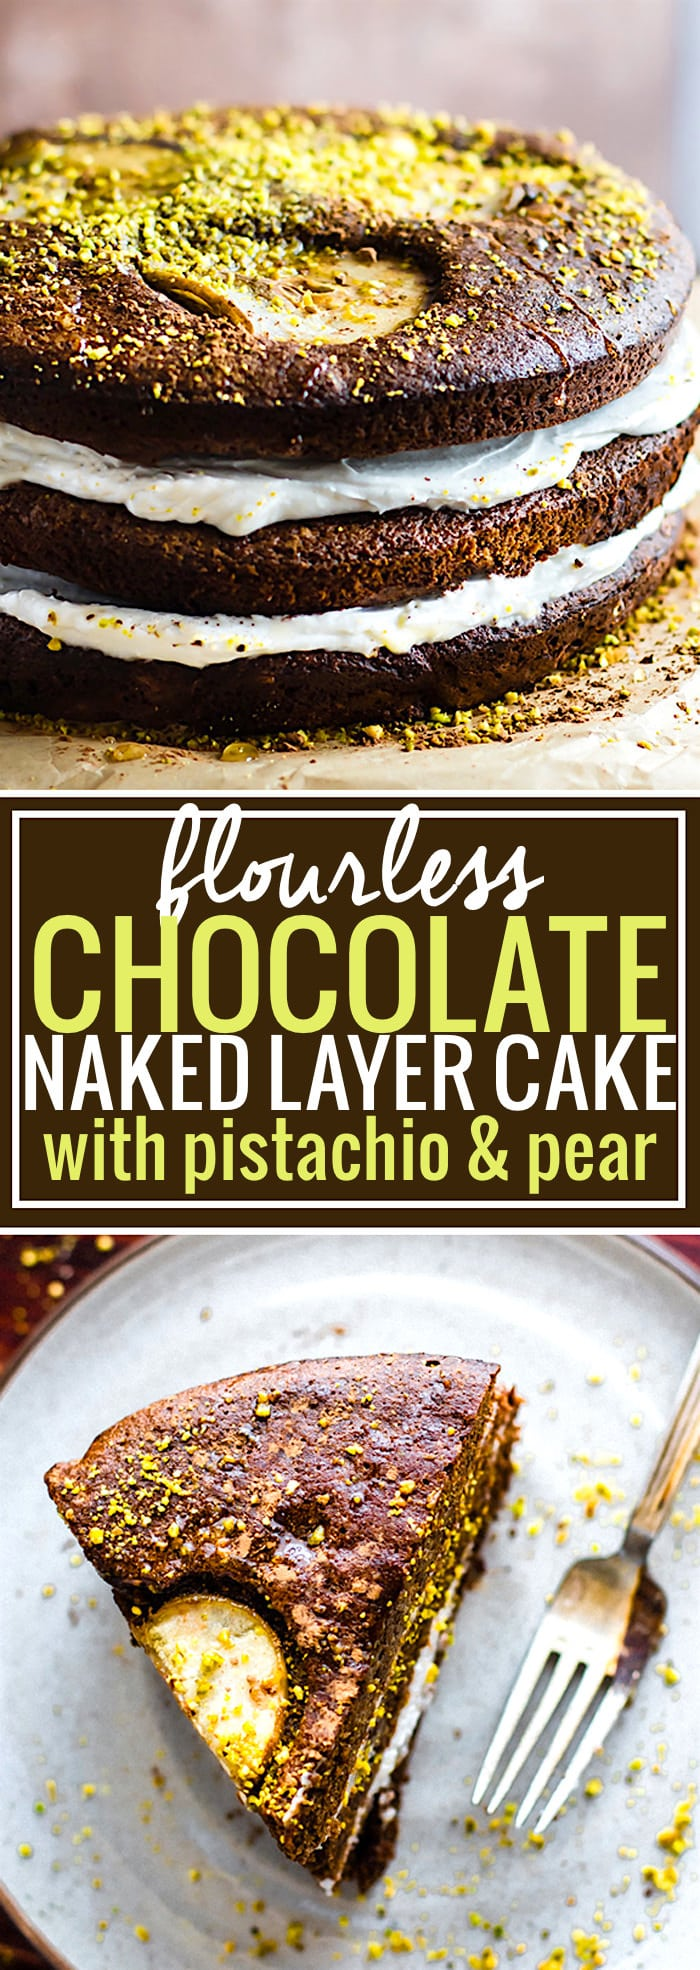 Flourless Chocolate Pistachio Pear Naked Layer Cake. A paleo flourless chocolate layered cake that is light in texture, rich in taste, and delicious! Filled with maple coconut cream then topped with cocoa, glazed pears, and pistachio! This naked cake is simple to make. A decadent dessert that feeds a crowd! Celebrate with cake @Cottercrunch